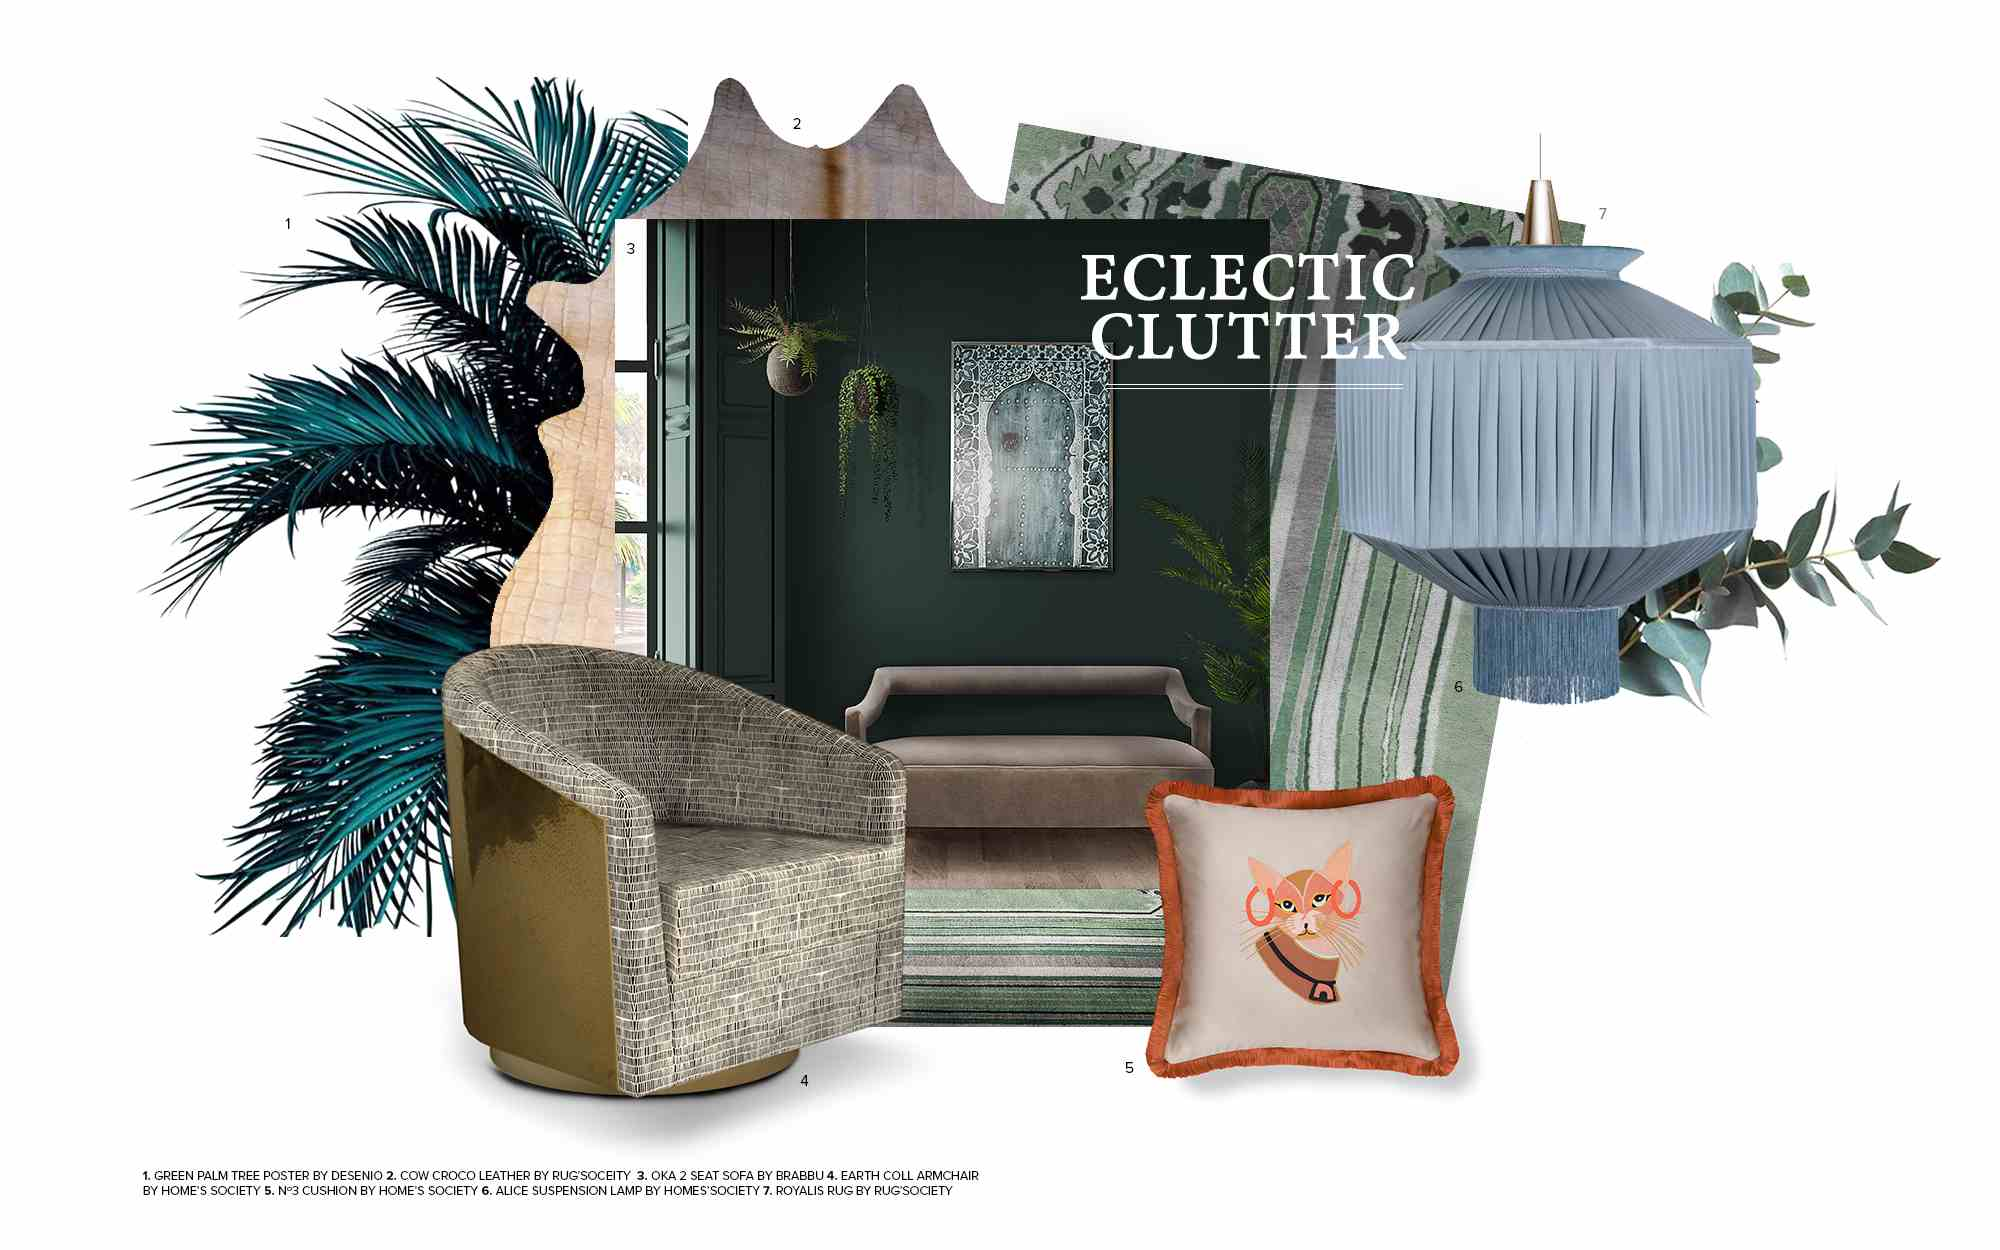 Eclectic Clutter mood boards MoodBoards – get inspired by trendy colors and textures eclectic clutter trends 2019 interior design